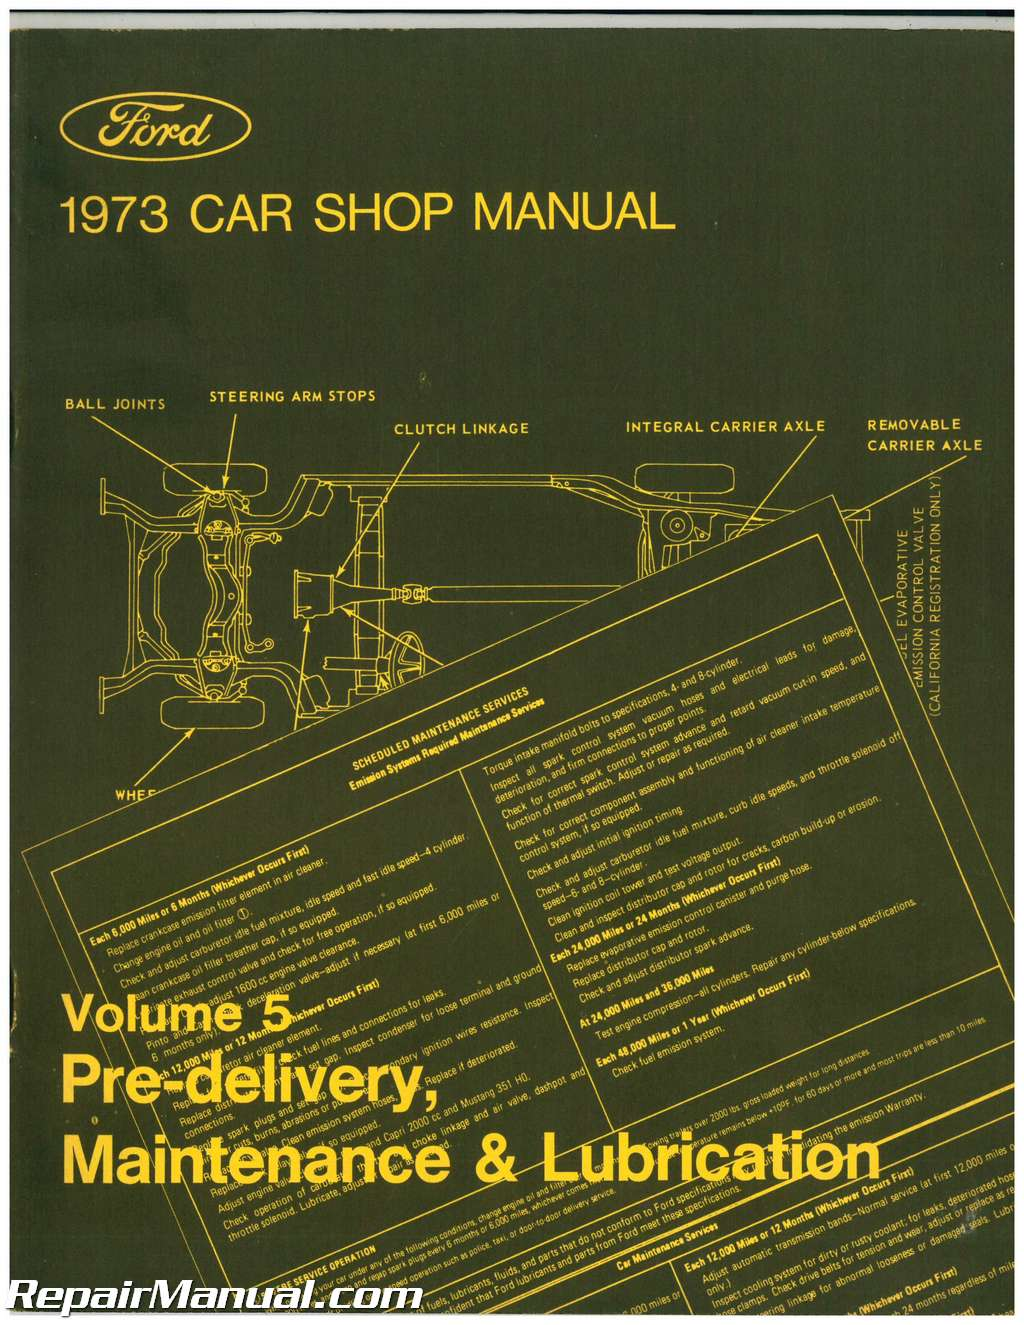 used 1973 ford car shop manual volume 5 pre delivery maintenance rh repairmanual com used shop mannequins used shop manuals